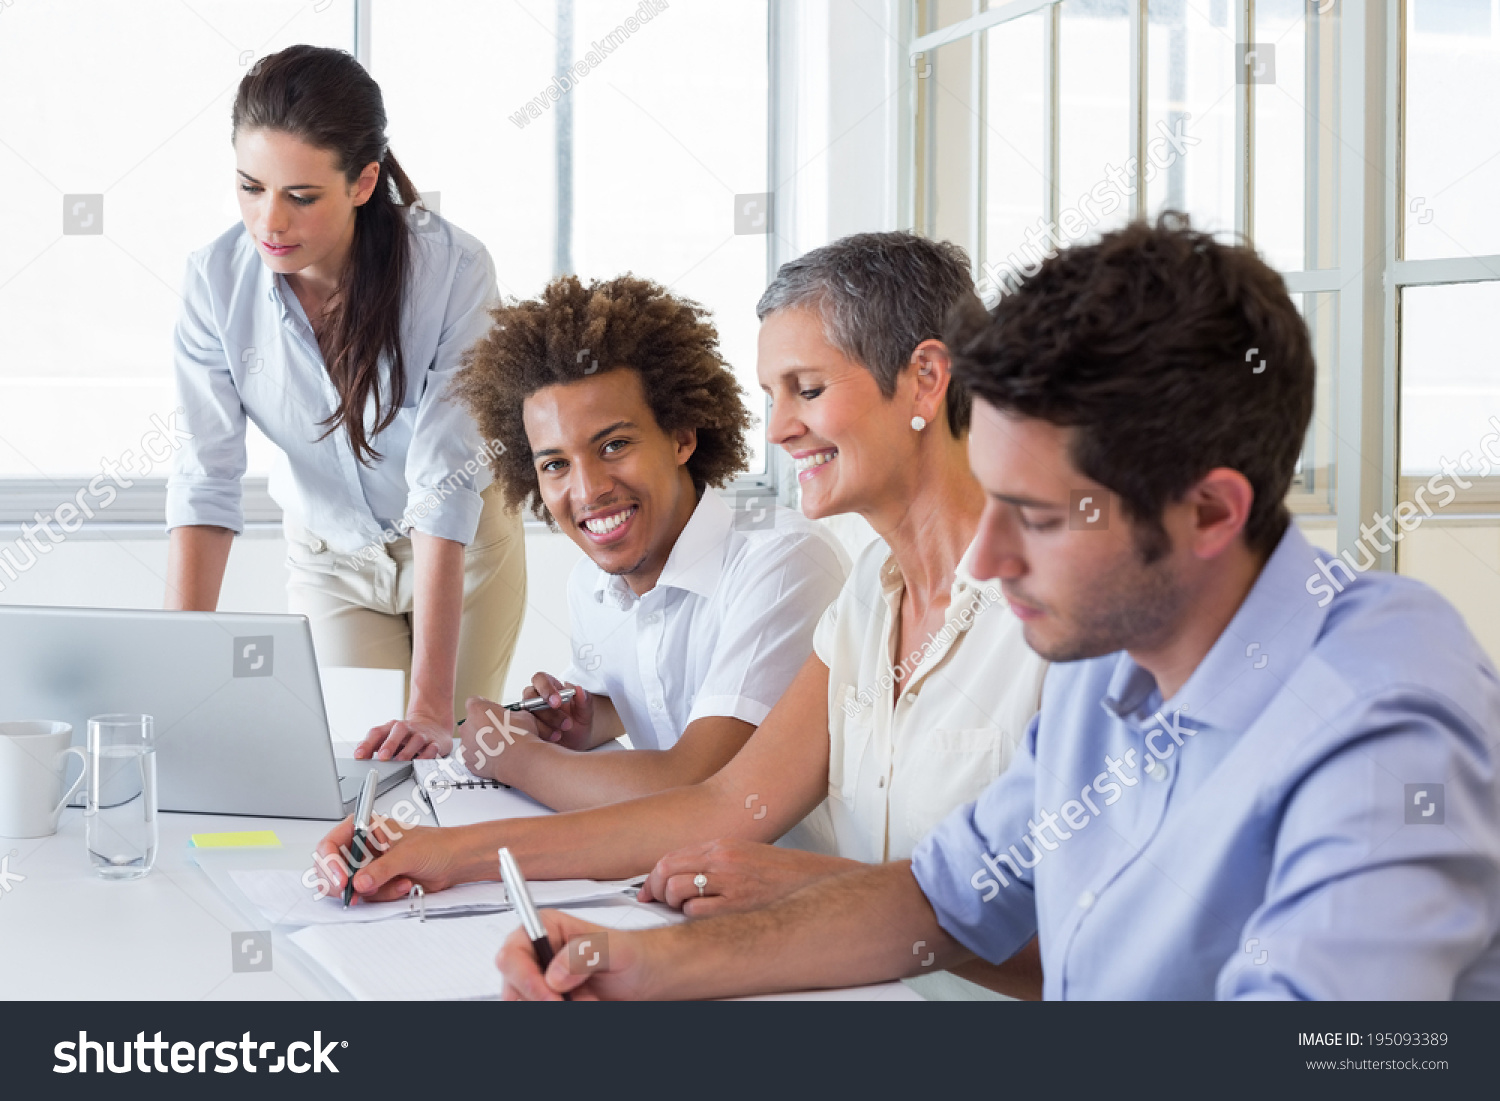 Western Europe Stock Photos and Pictures | Getty Images  |Relaxed Business Person